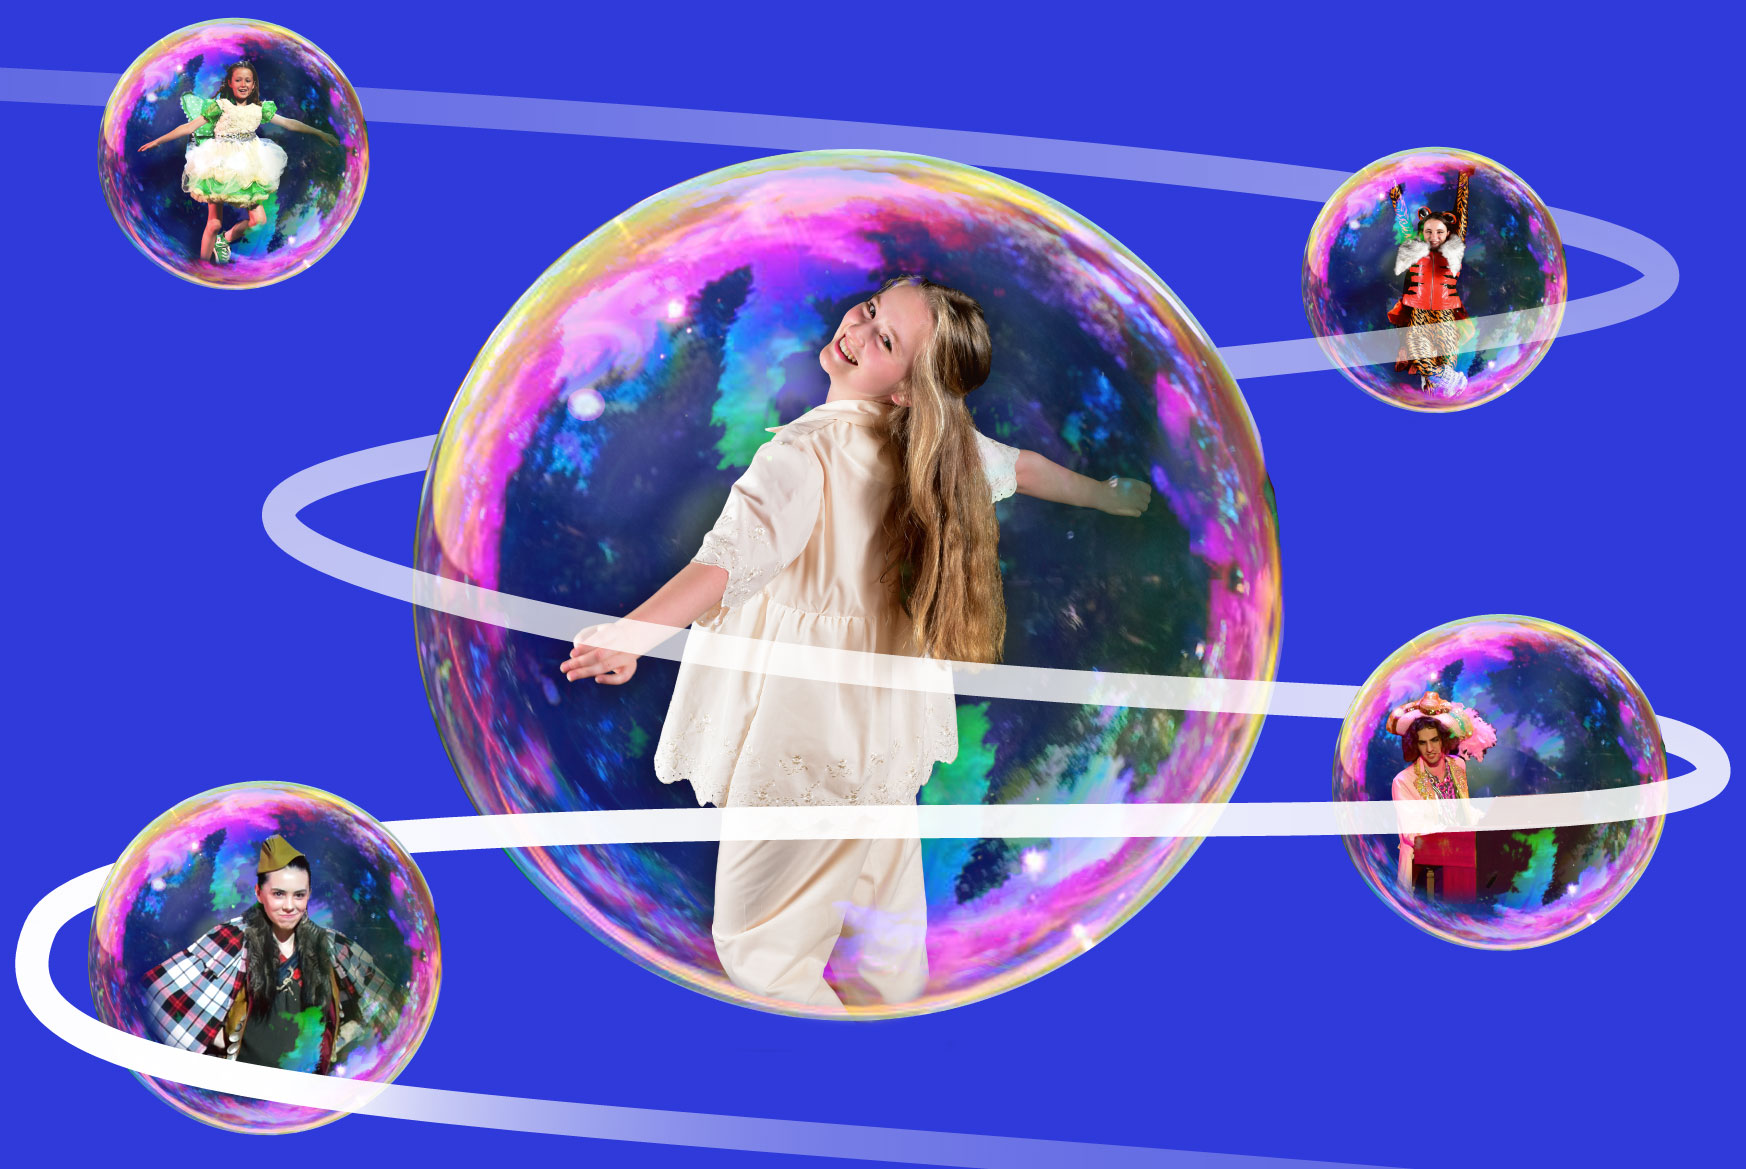 Wendy, floating in a bubble, connected to other bubbles